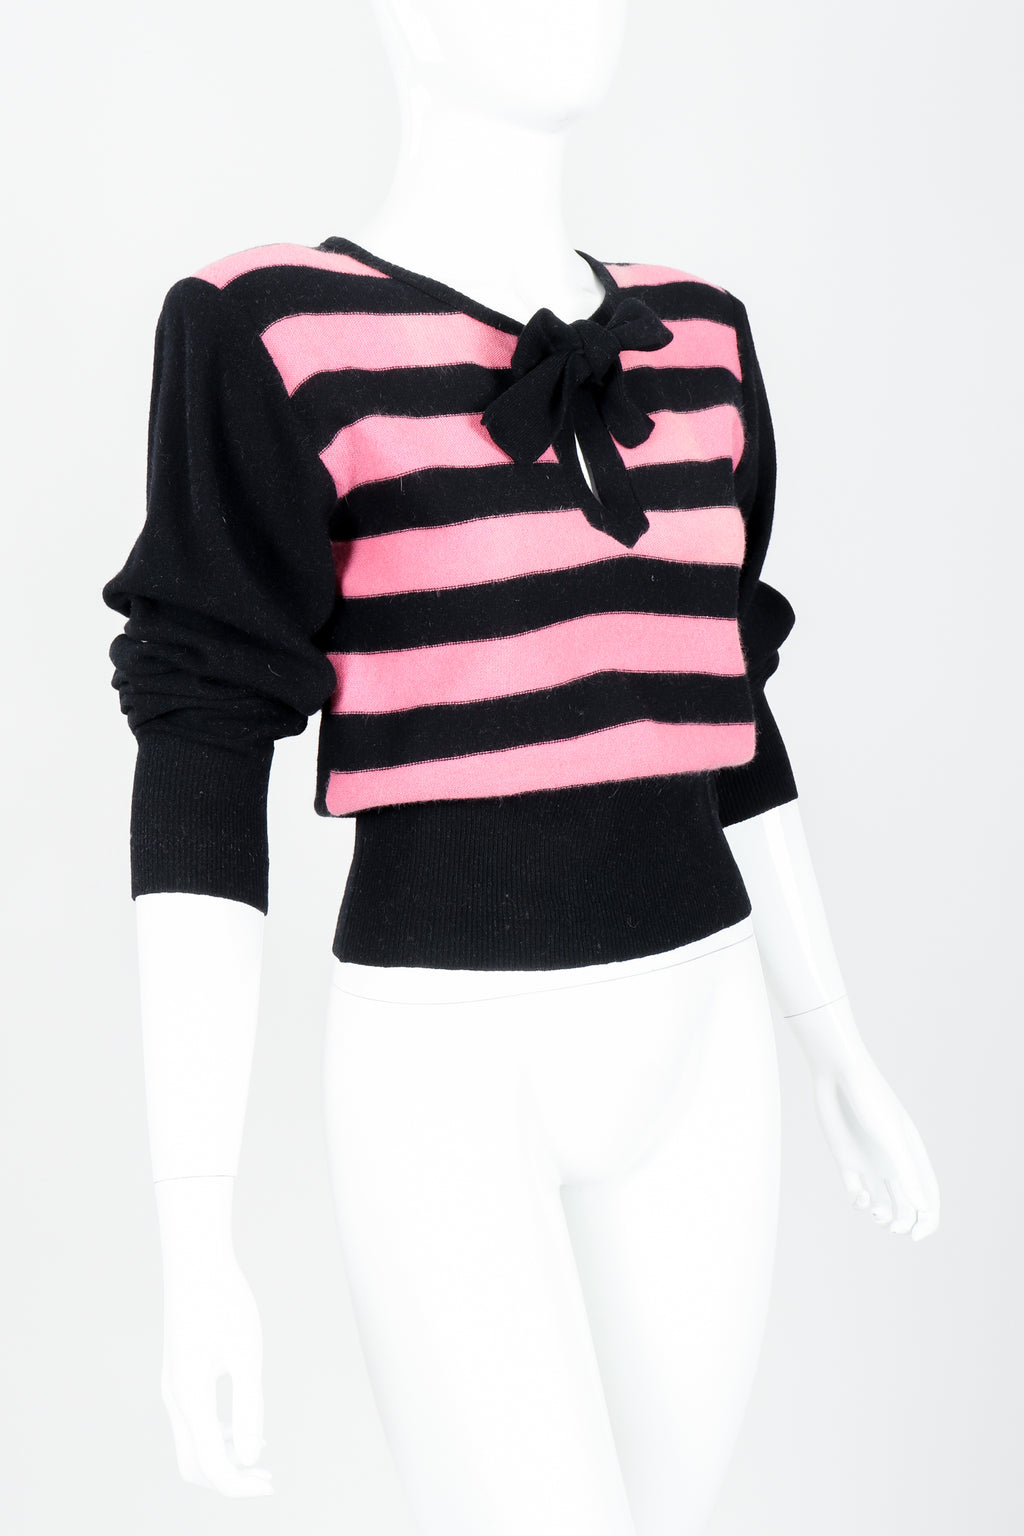 Vintage Sonia Rykiel Pink Stripe Keyhole Tie Neck Sweater on Mannequin Angled at Recess